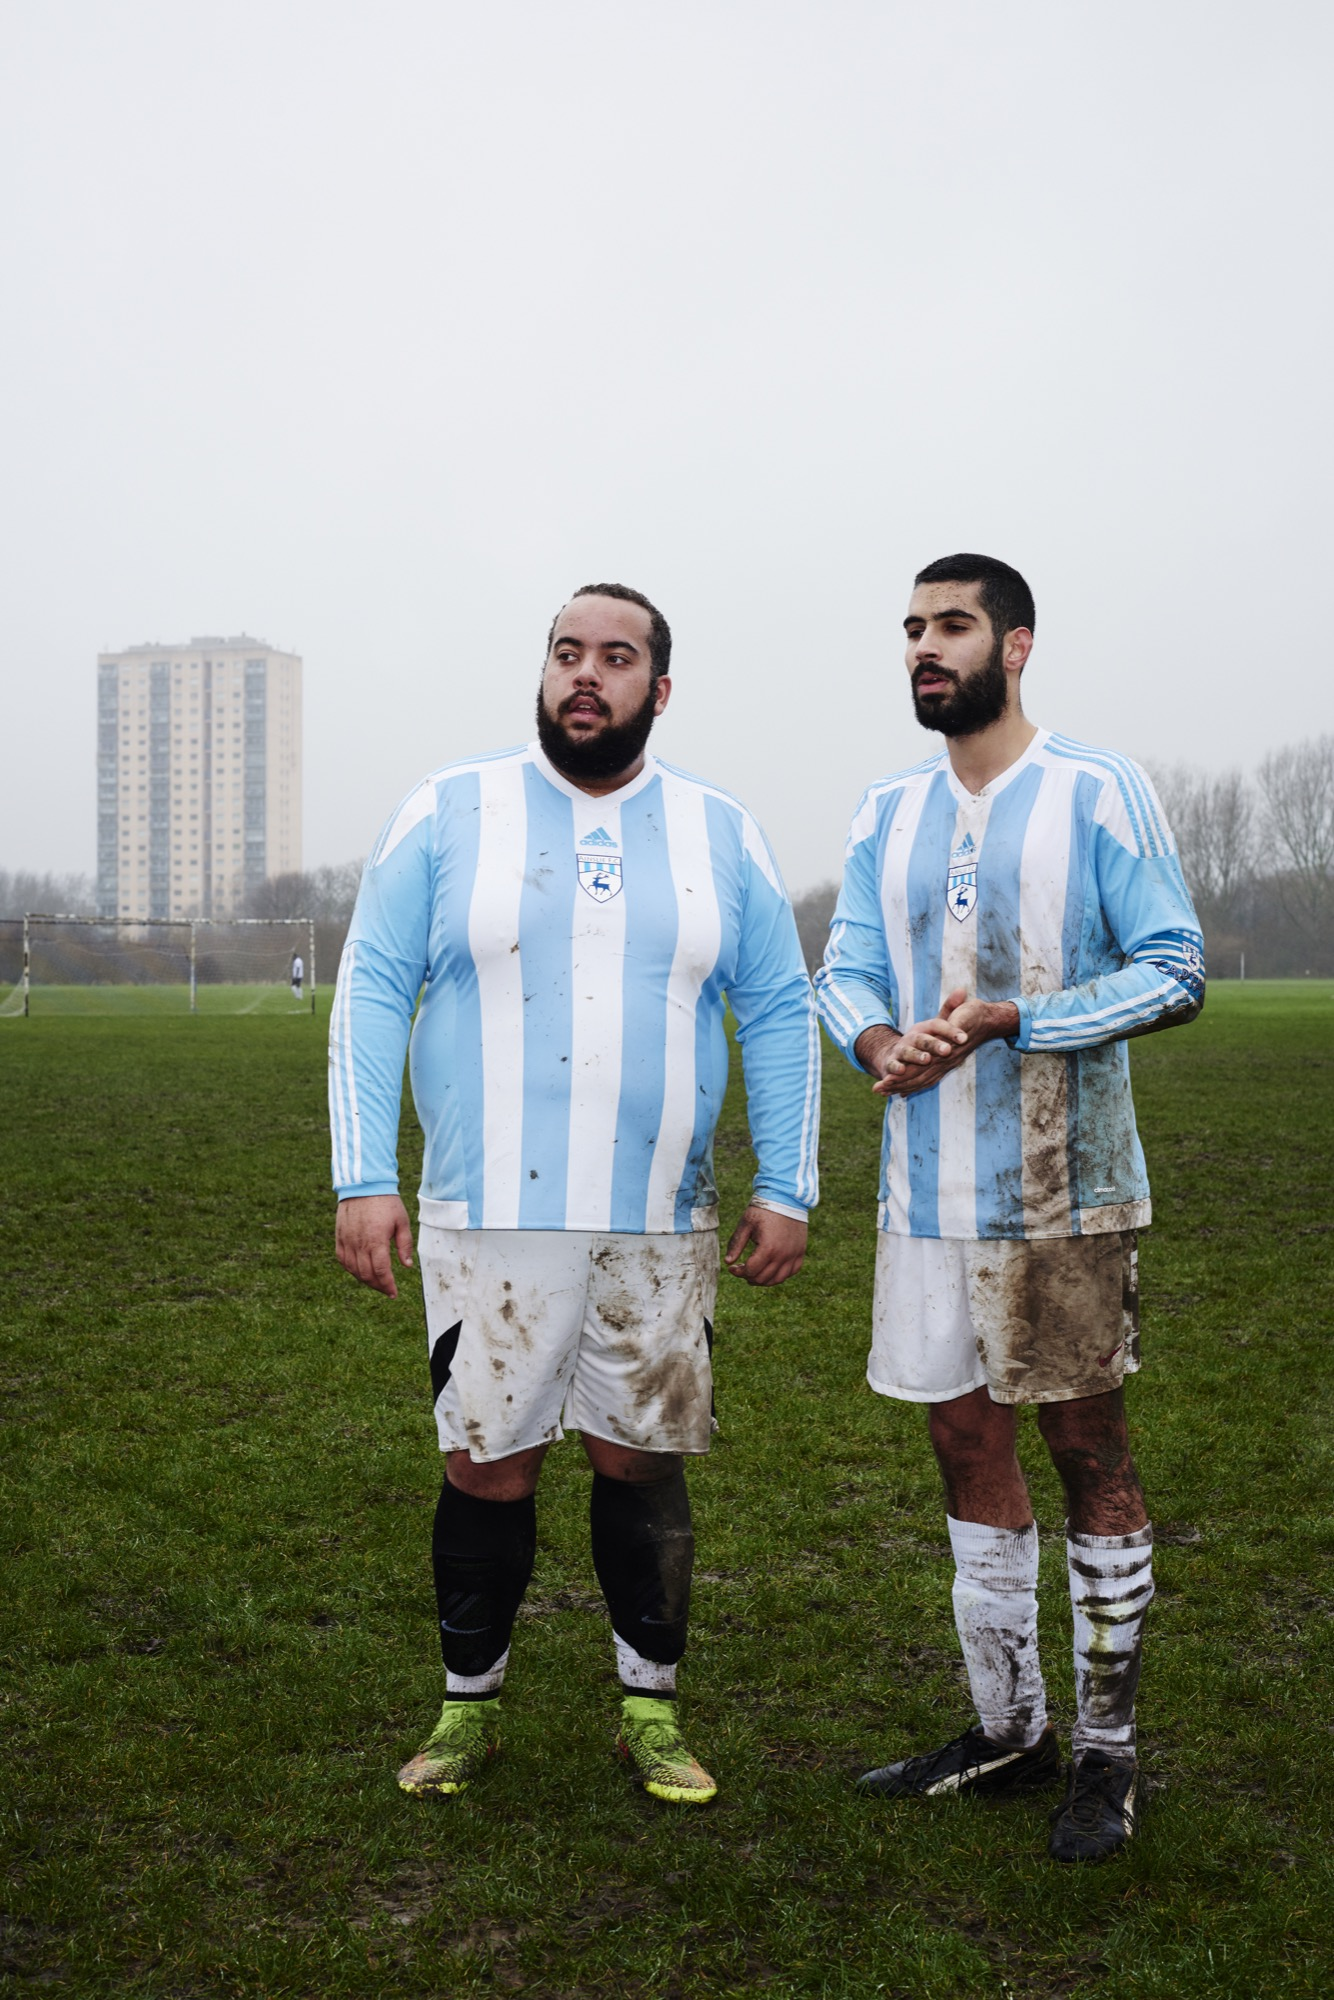 Sunday Football © Chris Baker